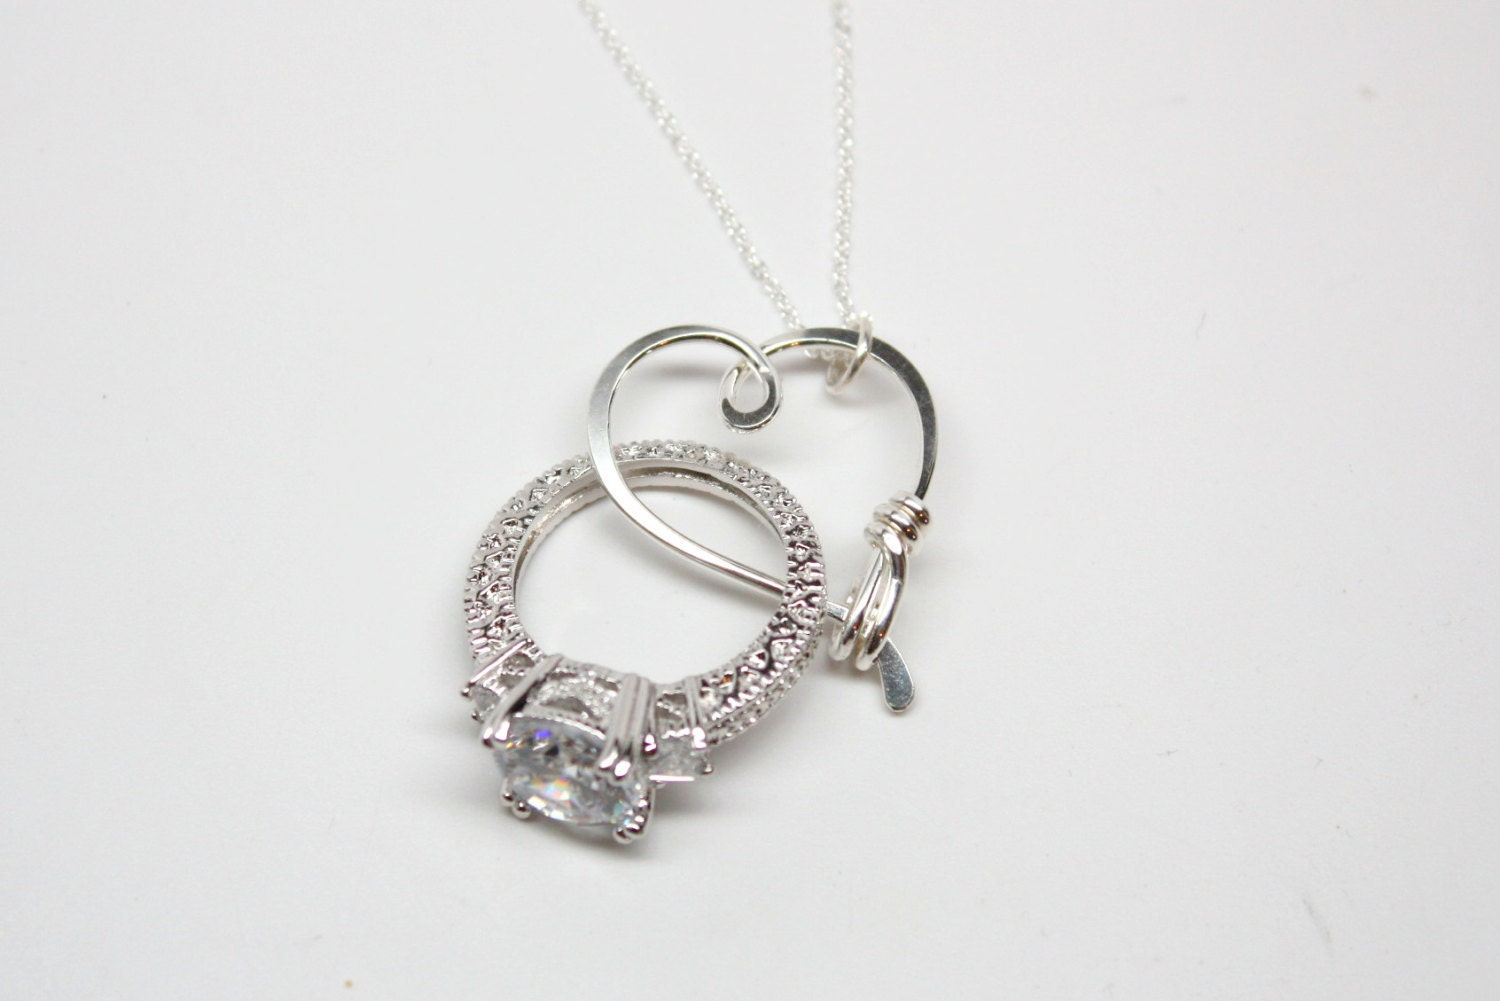 ring holder necklace wedding engagement ring holder pendant